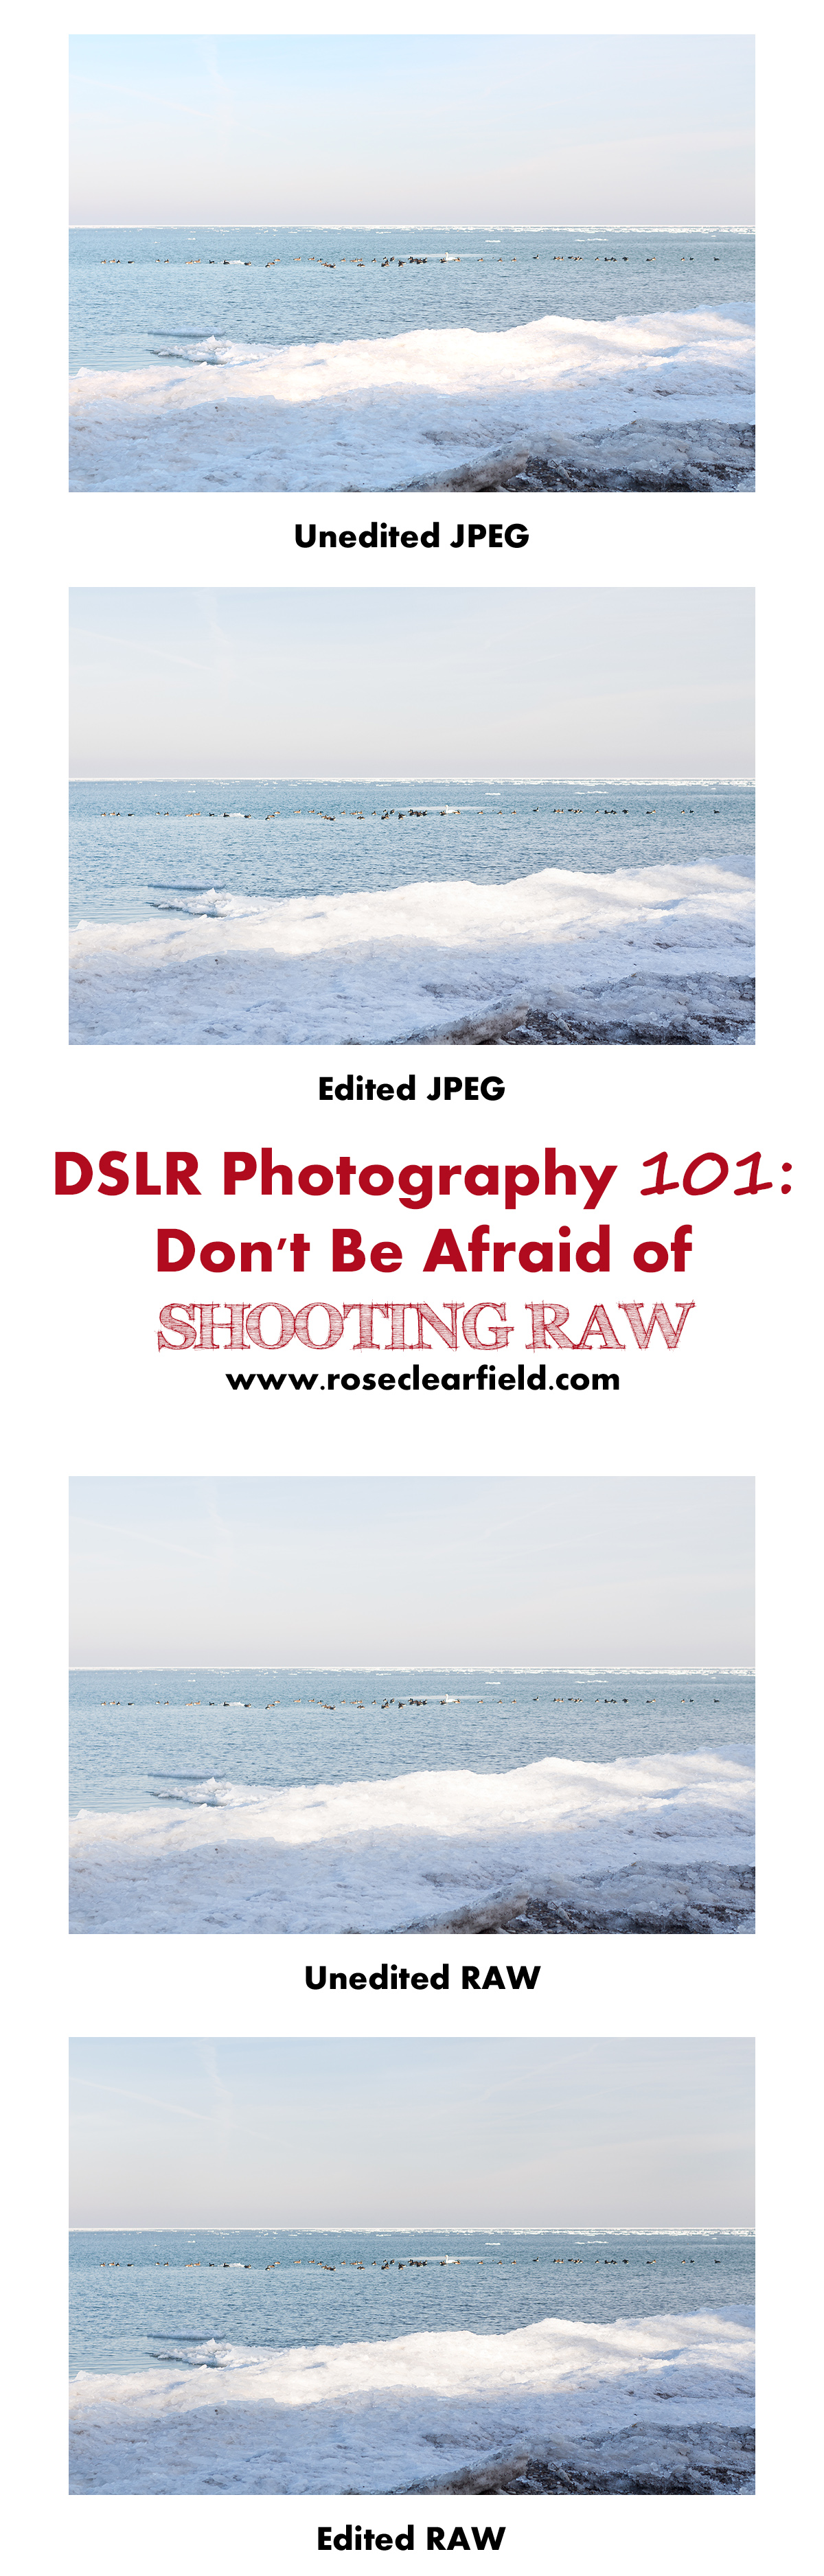 DSLR Photography 101: Don't Be Afraid of Shooting RAW | http://www.roseclearfield.com